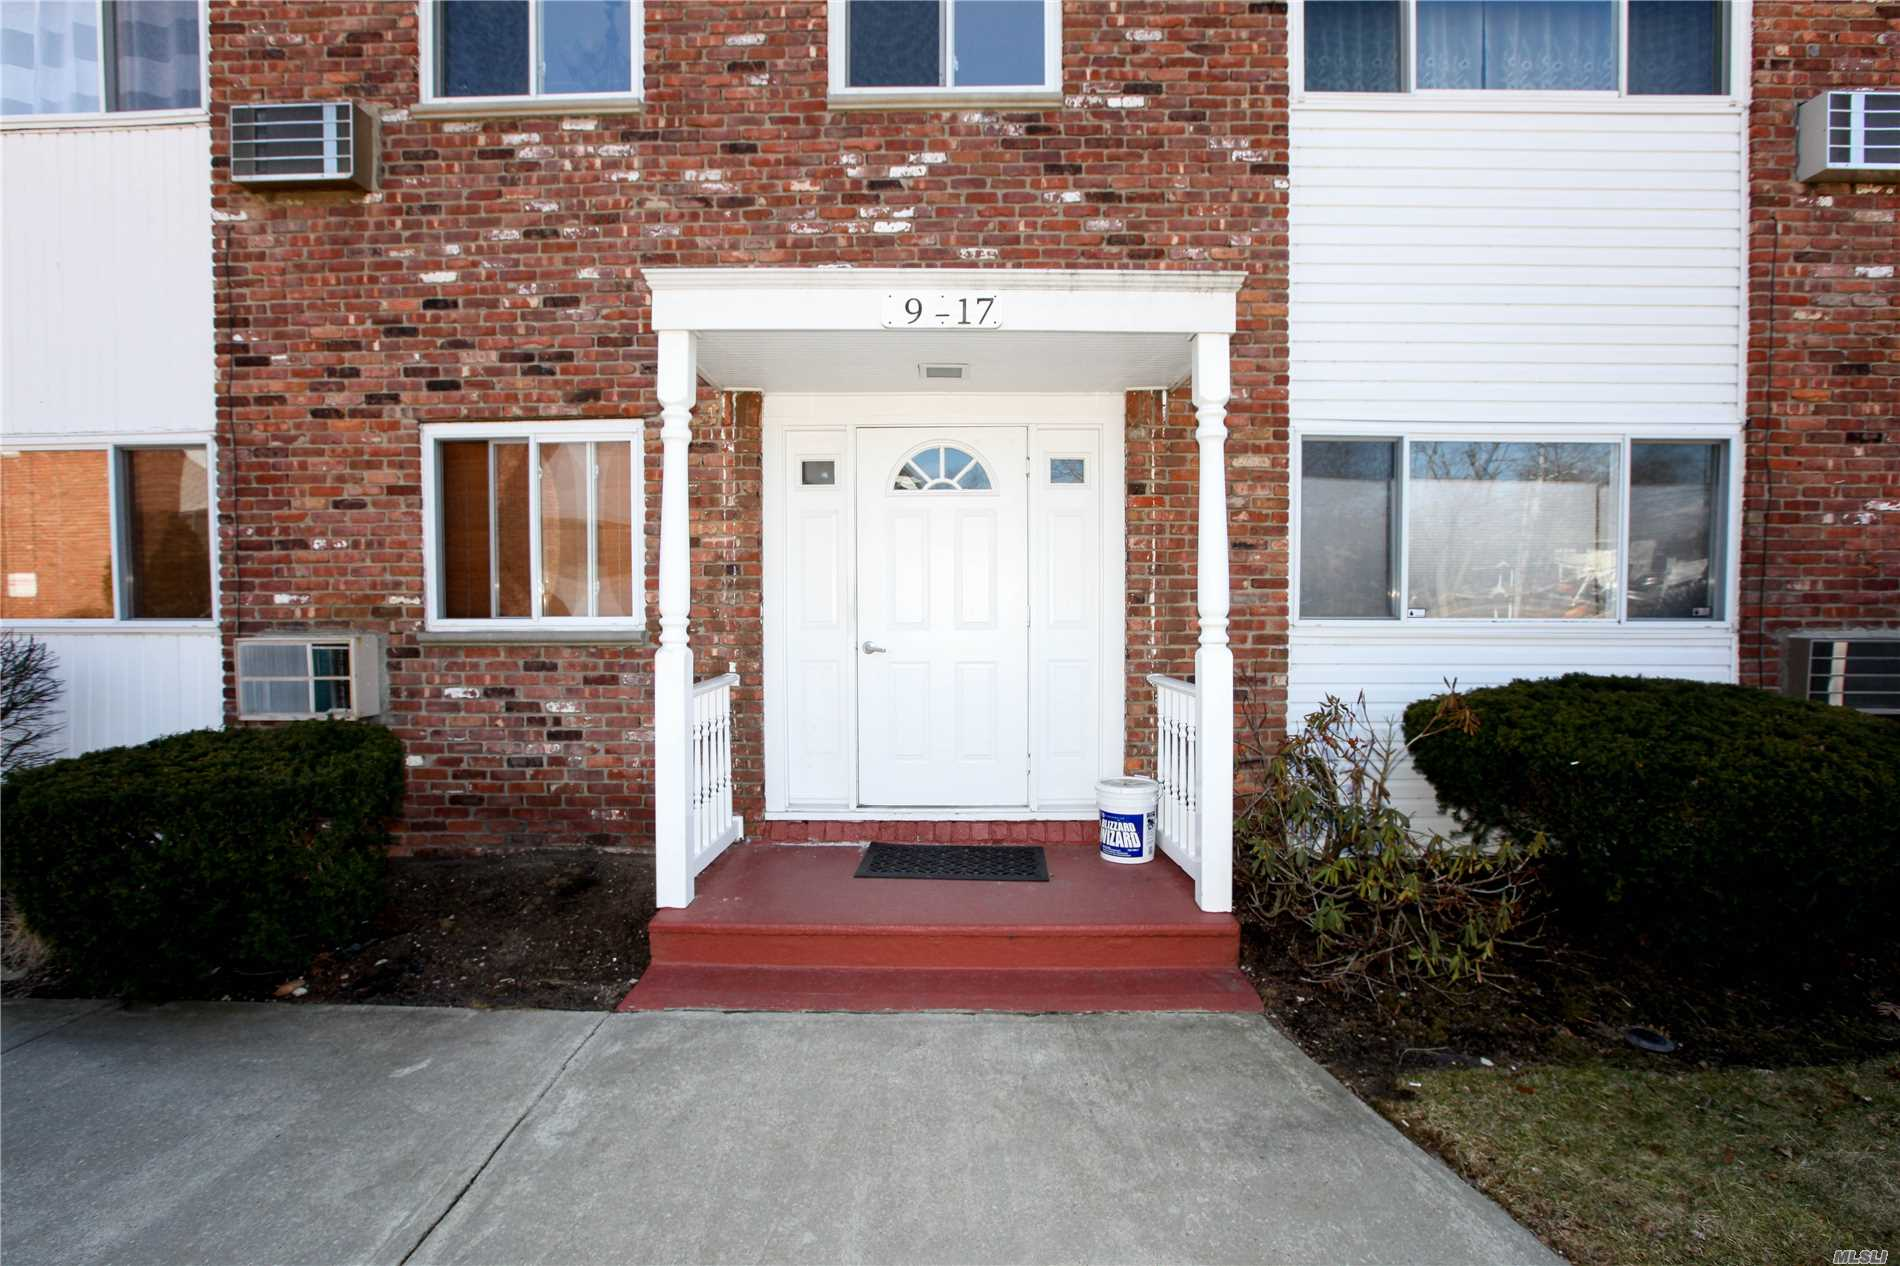 Lovely One Bedroom Unit With Easy Access To All, Very Centrally Located. Very Nice Size Bedroom With Walk-In Closet And Updated Bath. Well Maintained Hardwood Flooring And Alot Of Storage. Laundry Area In Development. Heat Is Included .